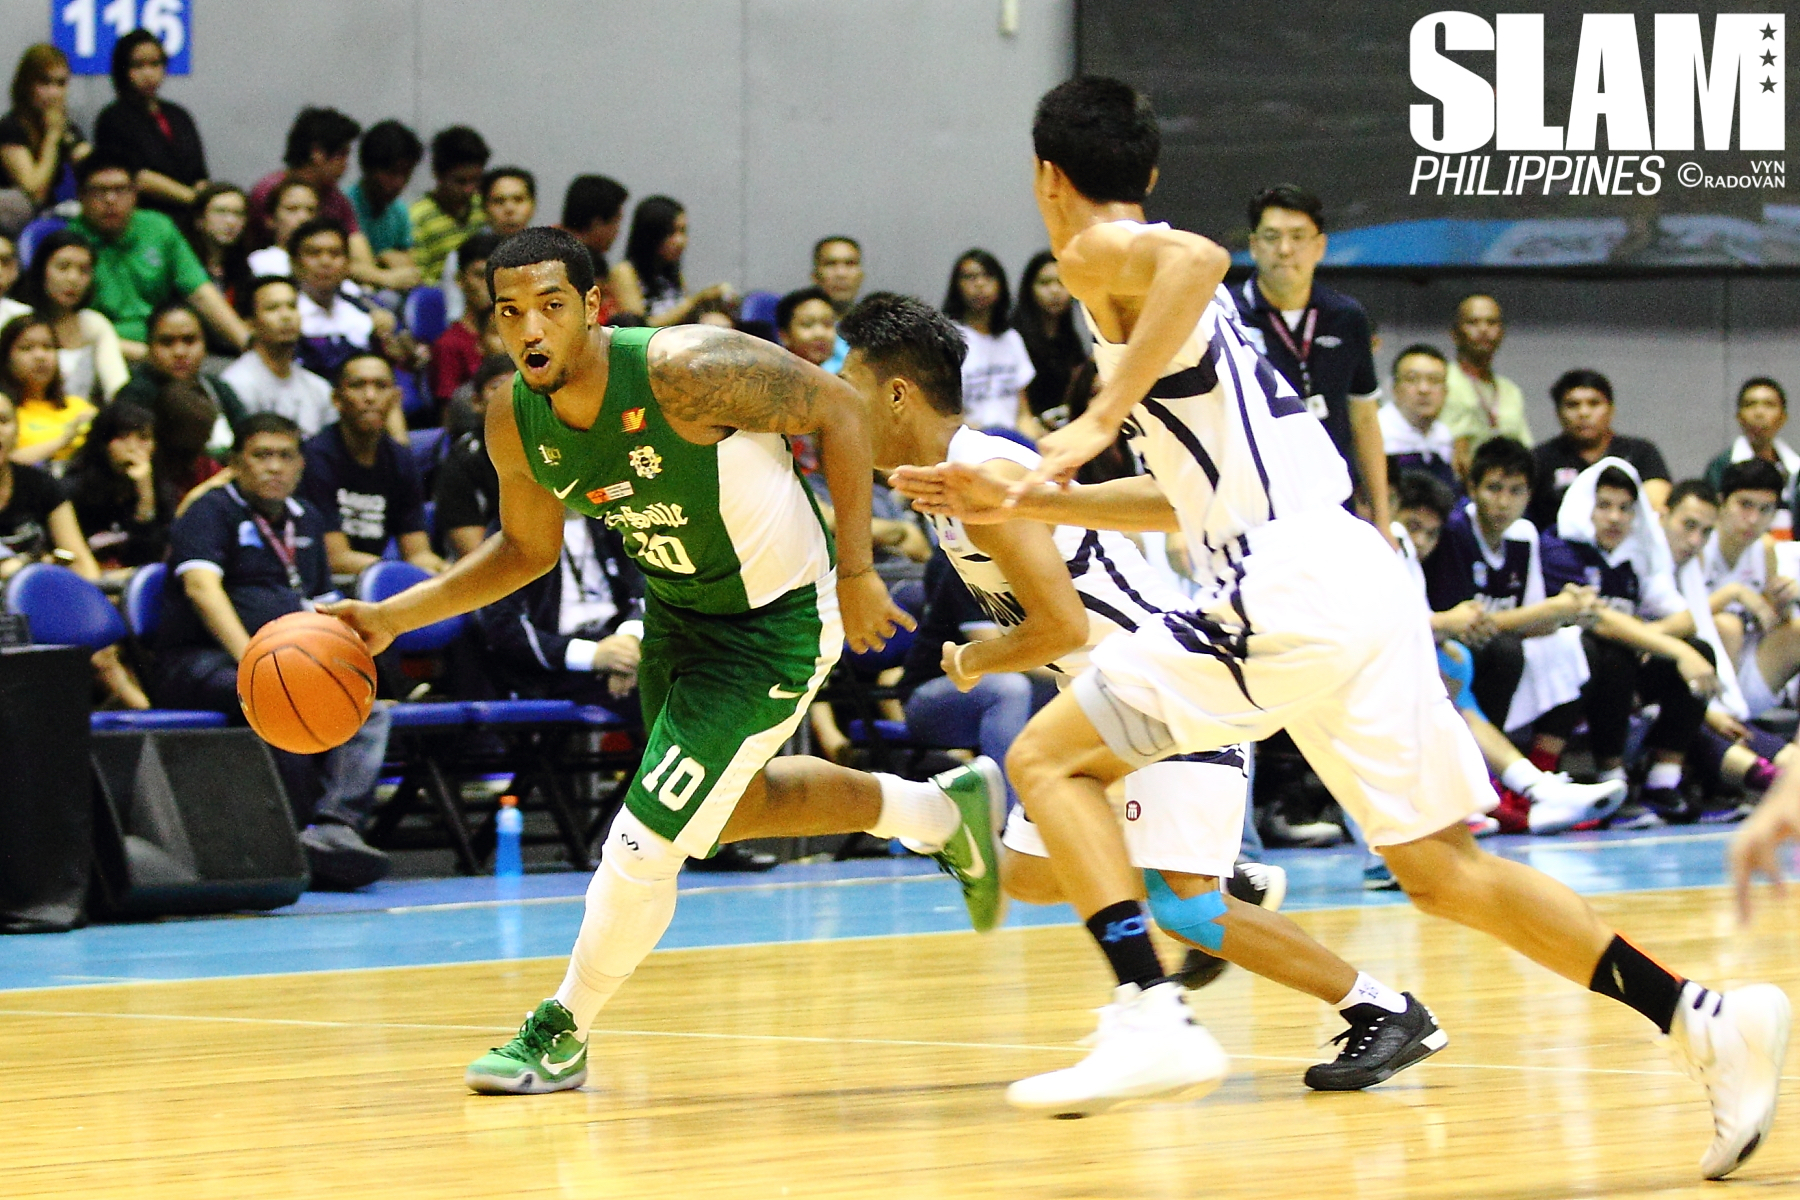 UAAP - DLSU vs ADU - September 20, 2015 - 2